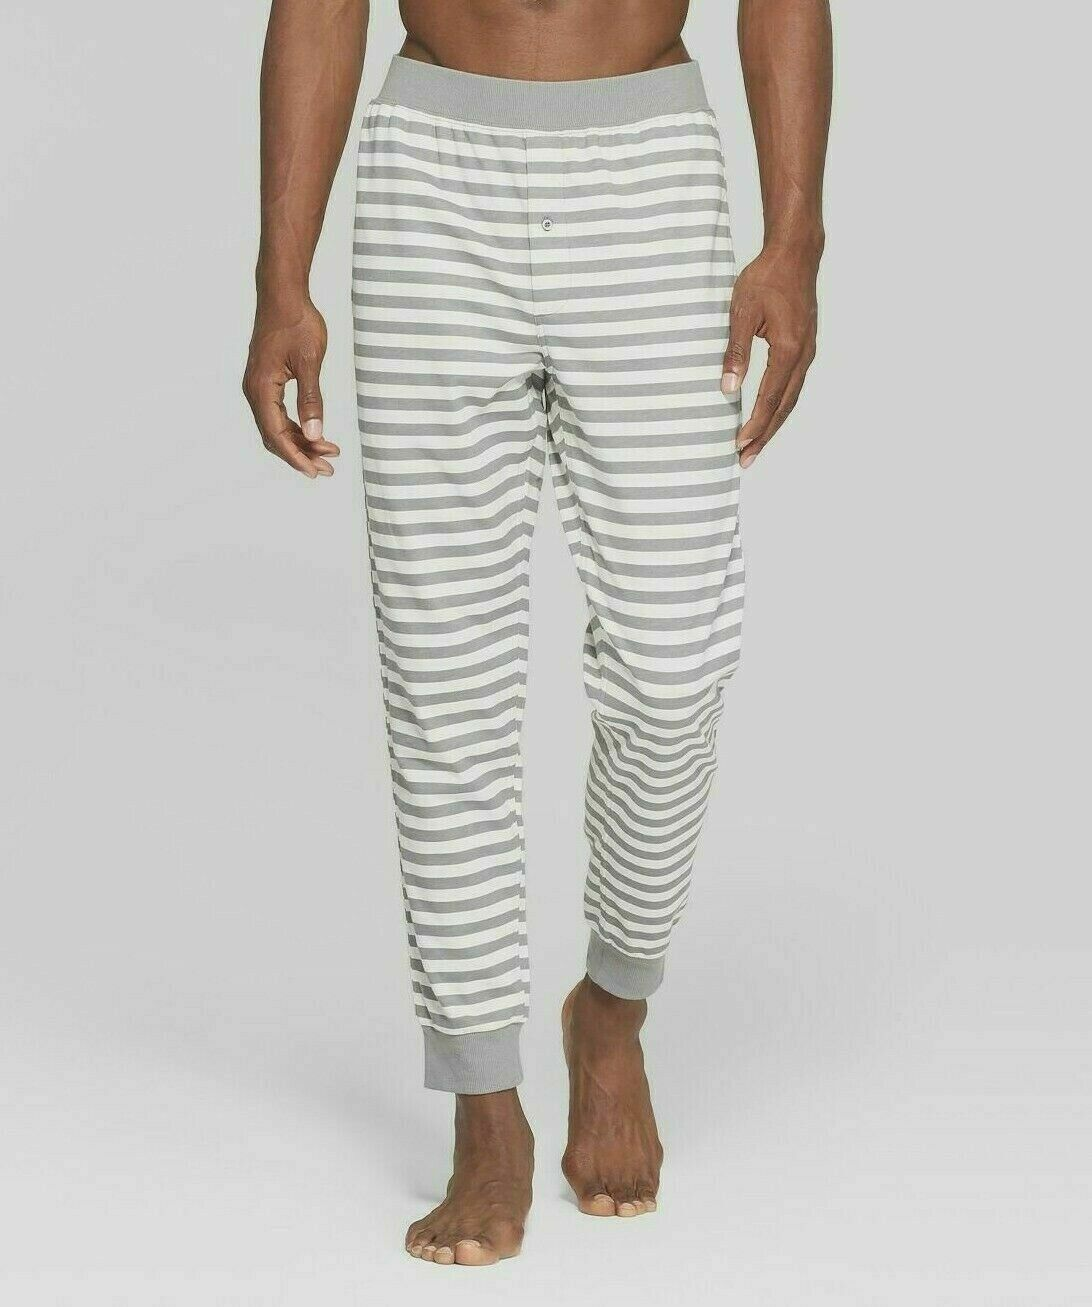 Men's French Terry Jogger Pajama Lounge Pants, M, White Gray stripe– 100% Cotton Clothing, Shoes & Accessories